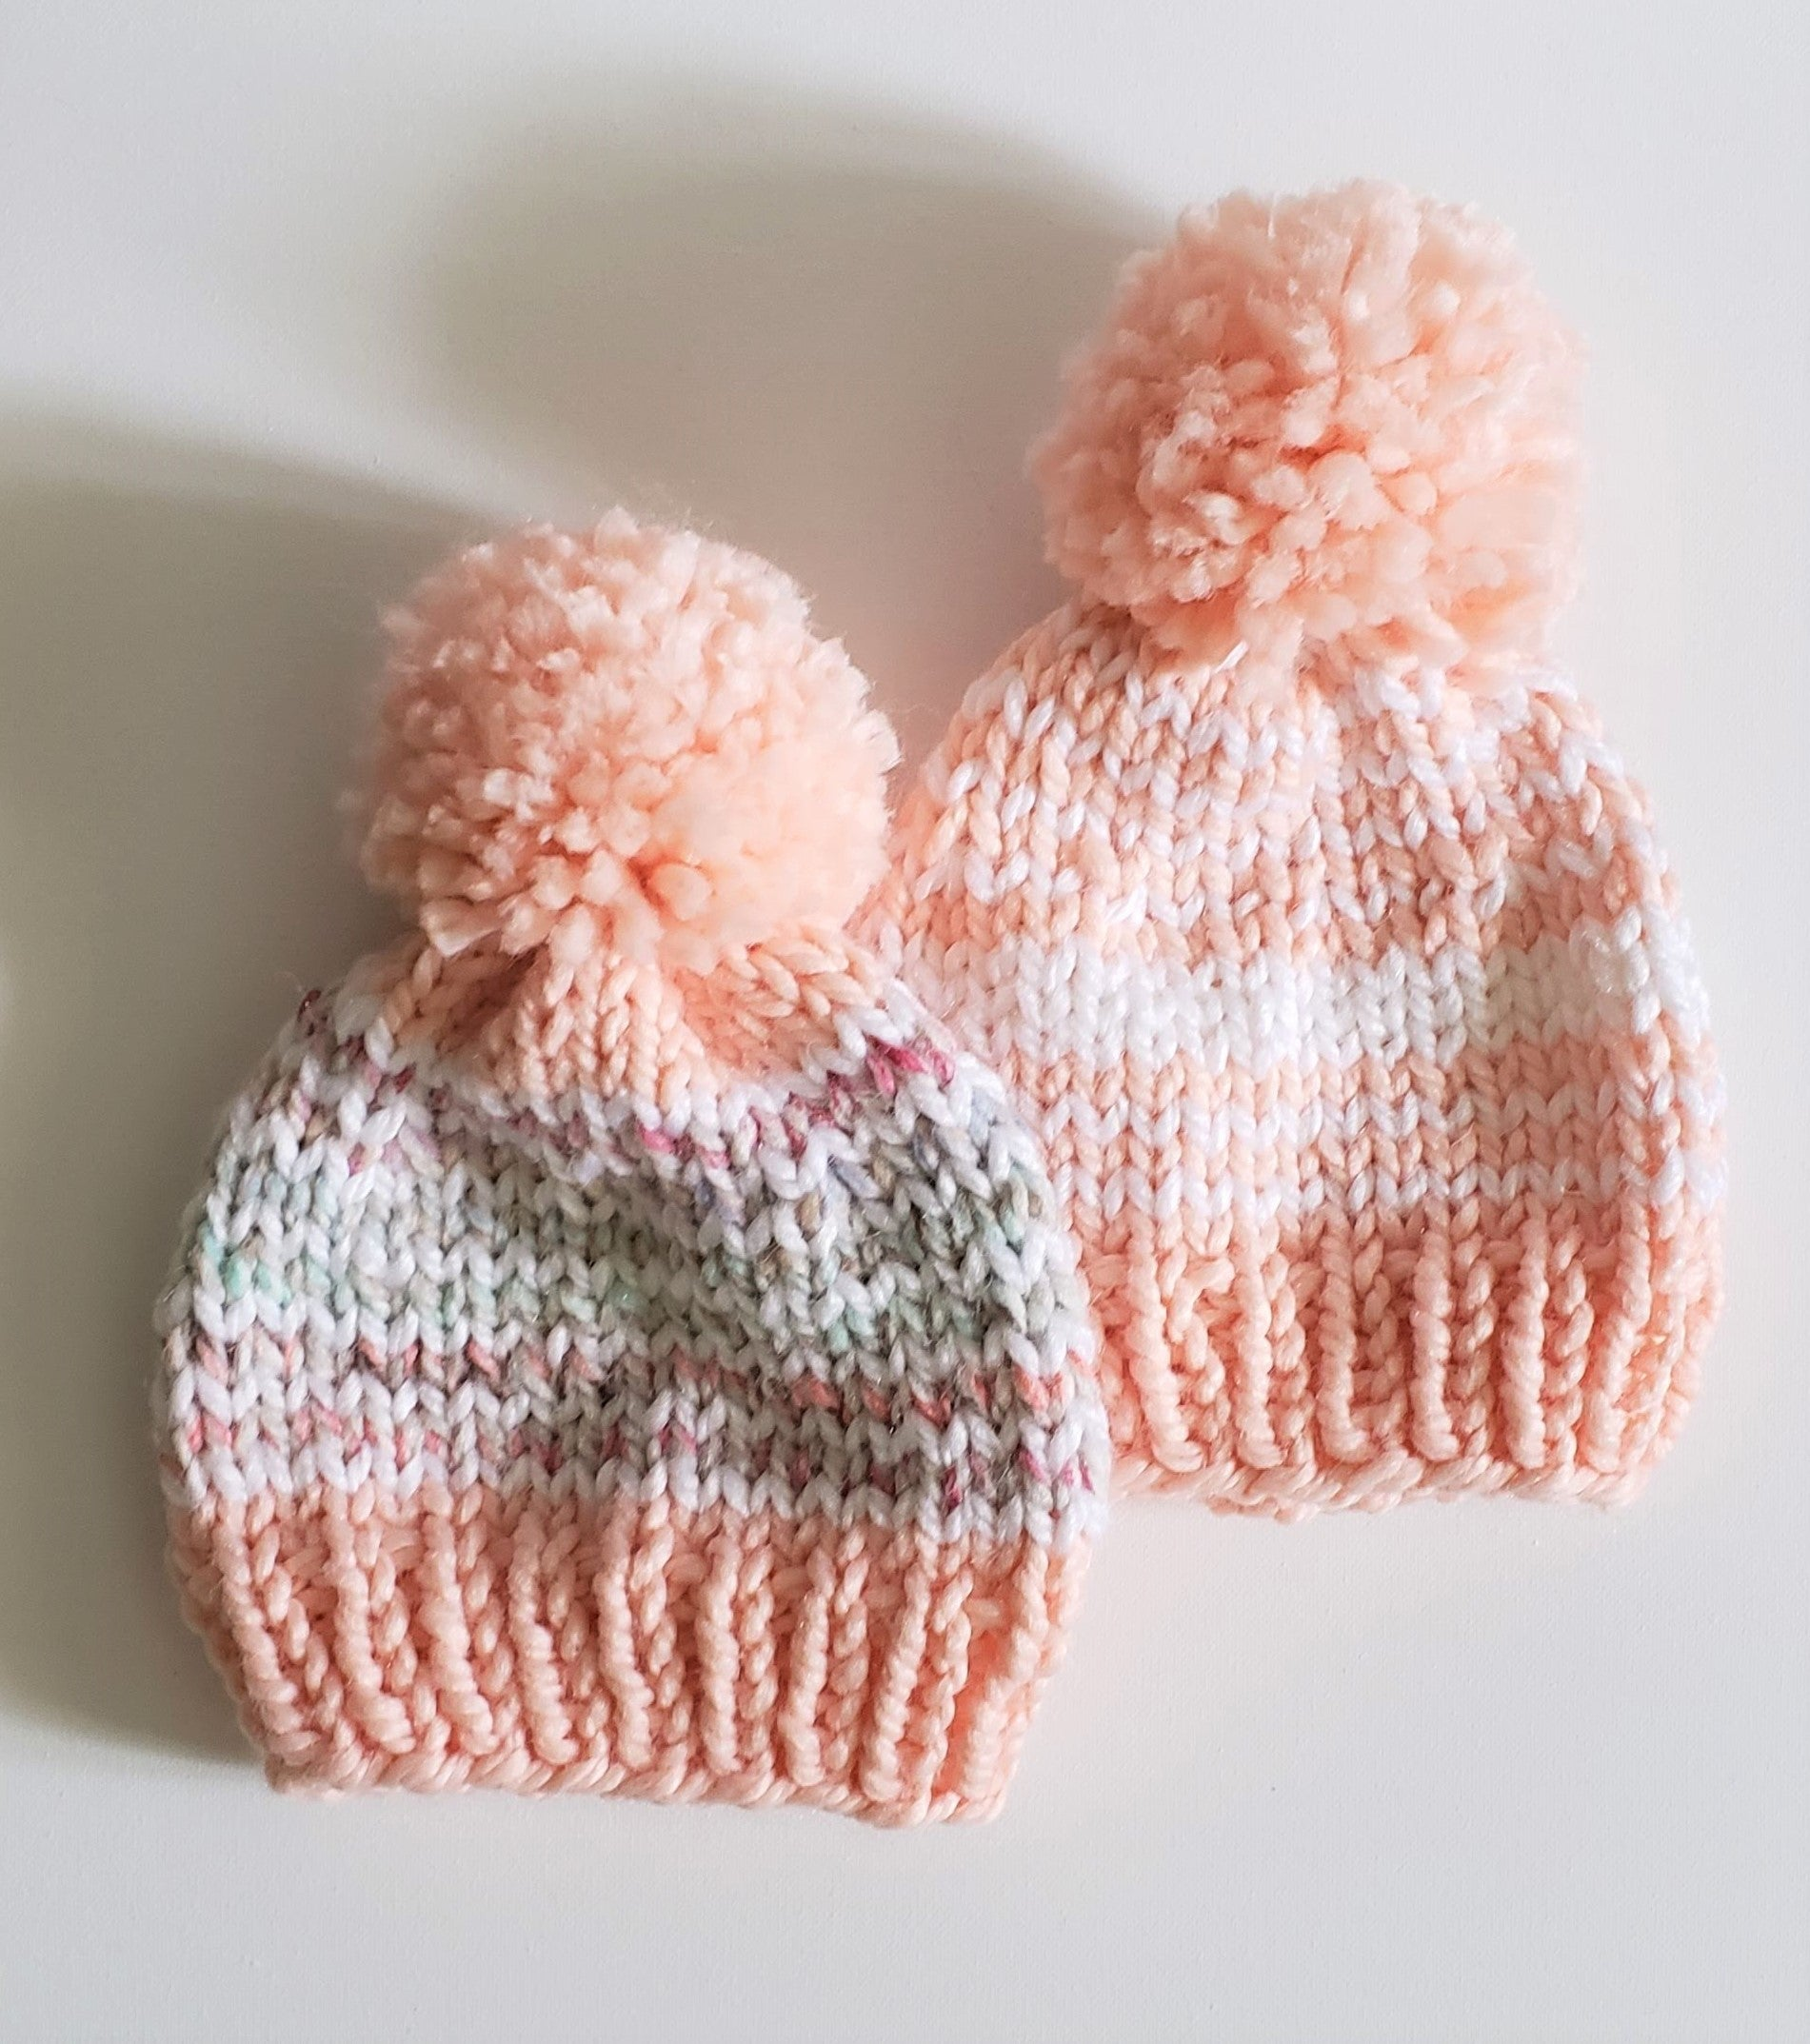 Knit Beanies in Antique Pink